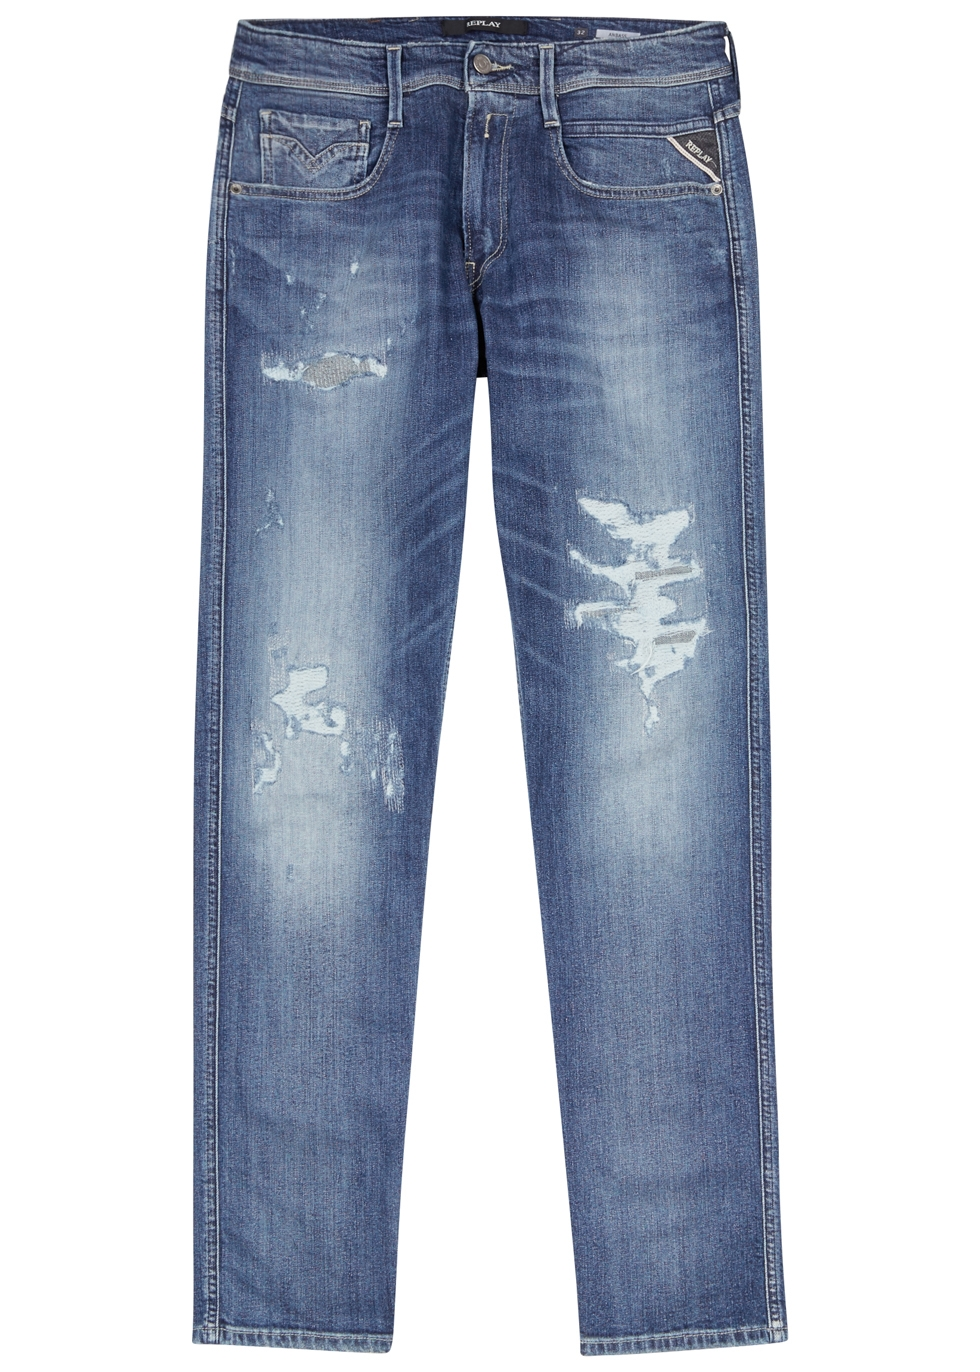 REPLAY Anbass Distressed Skinny Jeans in Mid Blu